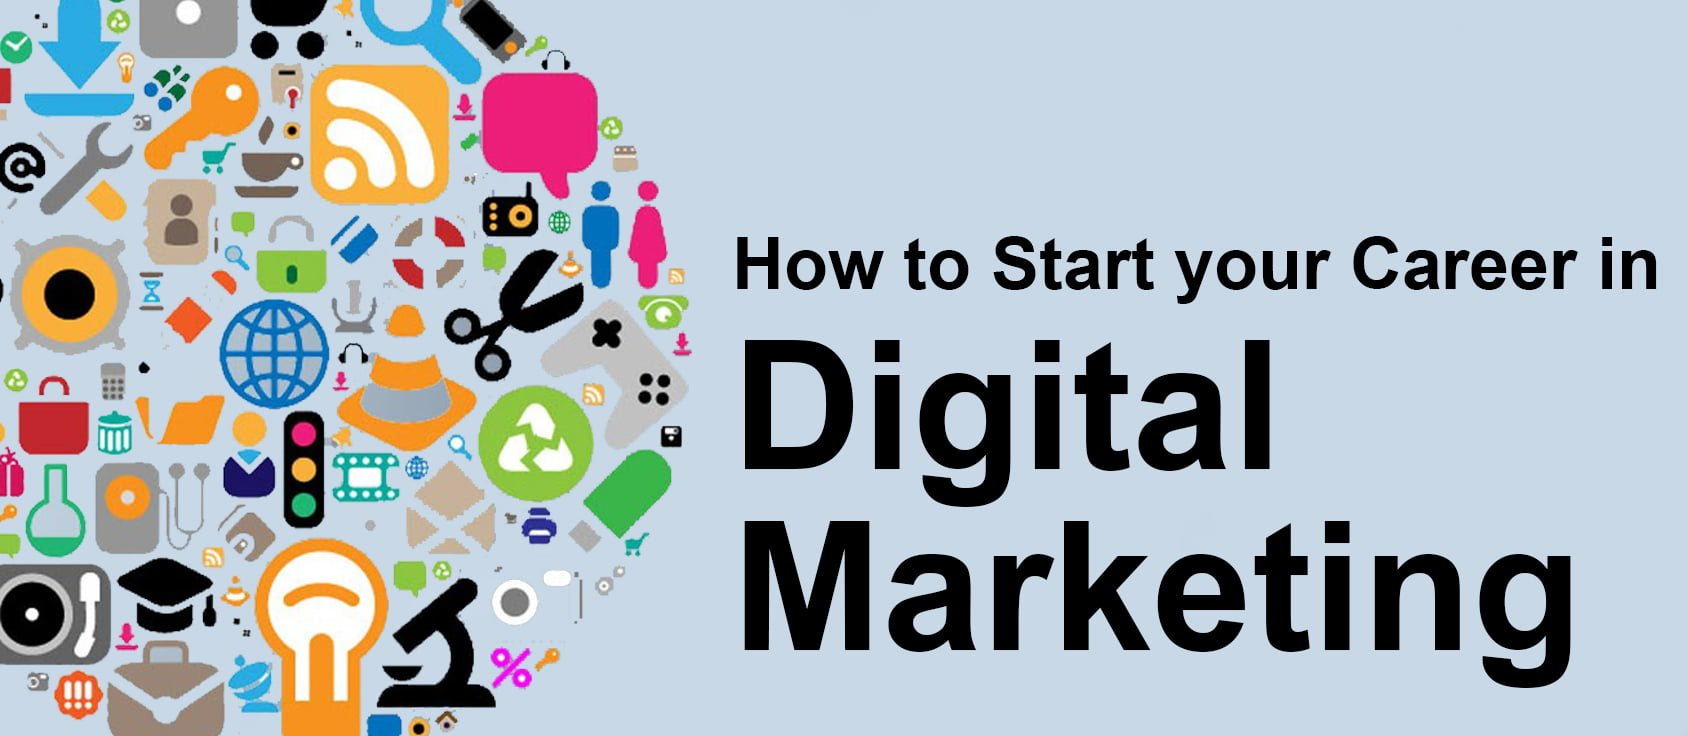 How to Pursue a Career in Digital Marketing: Managerial Point of View